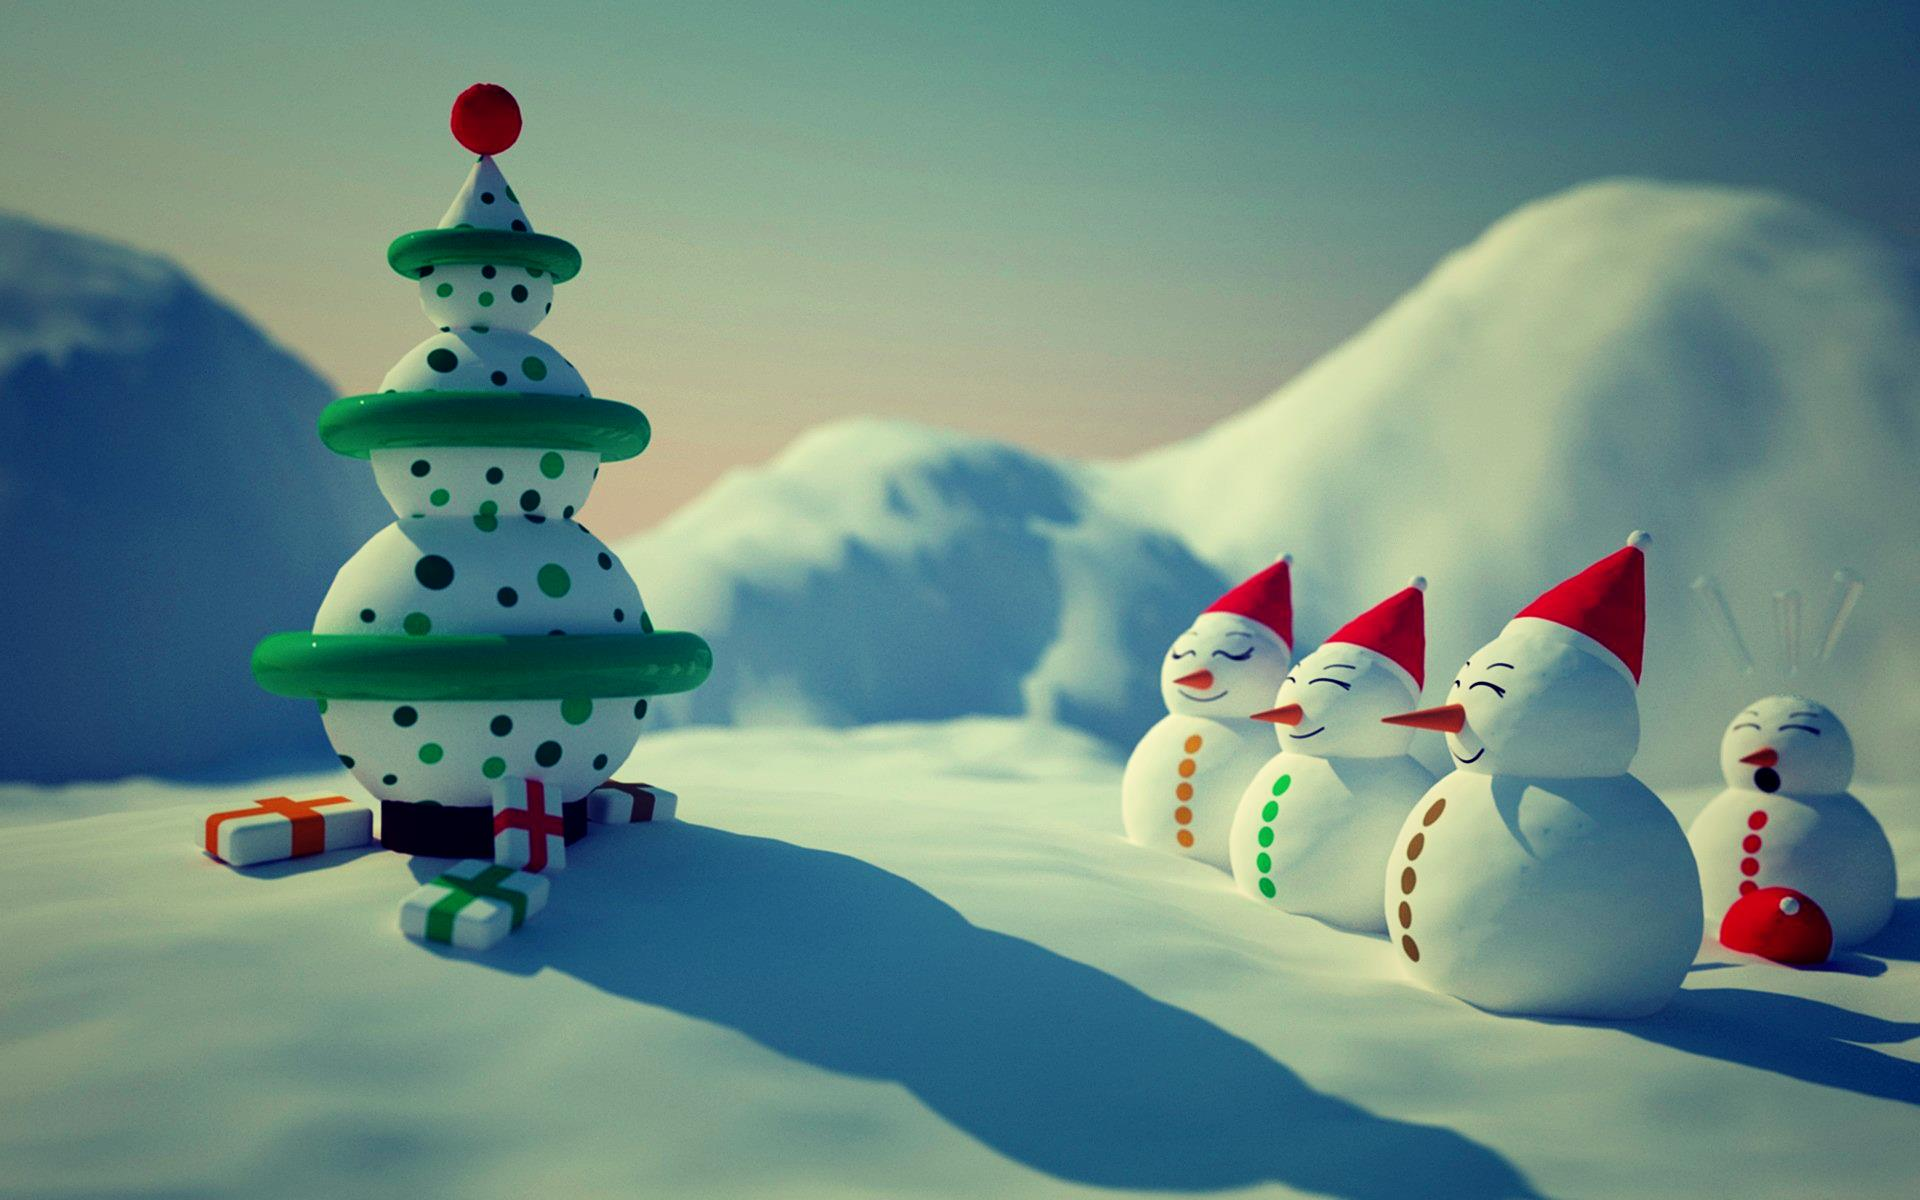 snowman-merry-christmas-hd-wallpapers-free | wallpaper.wiki